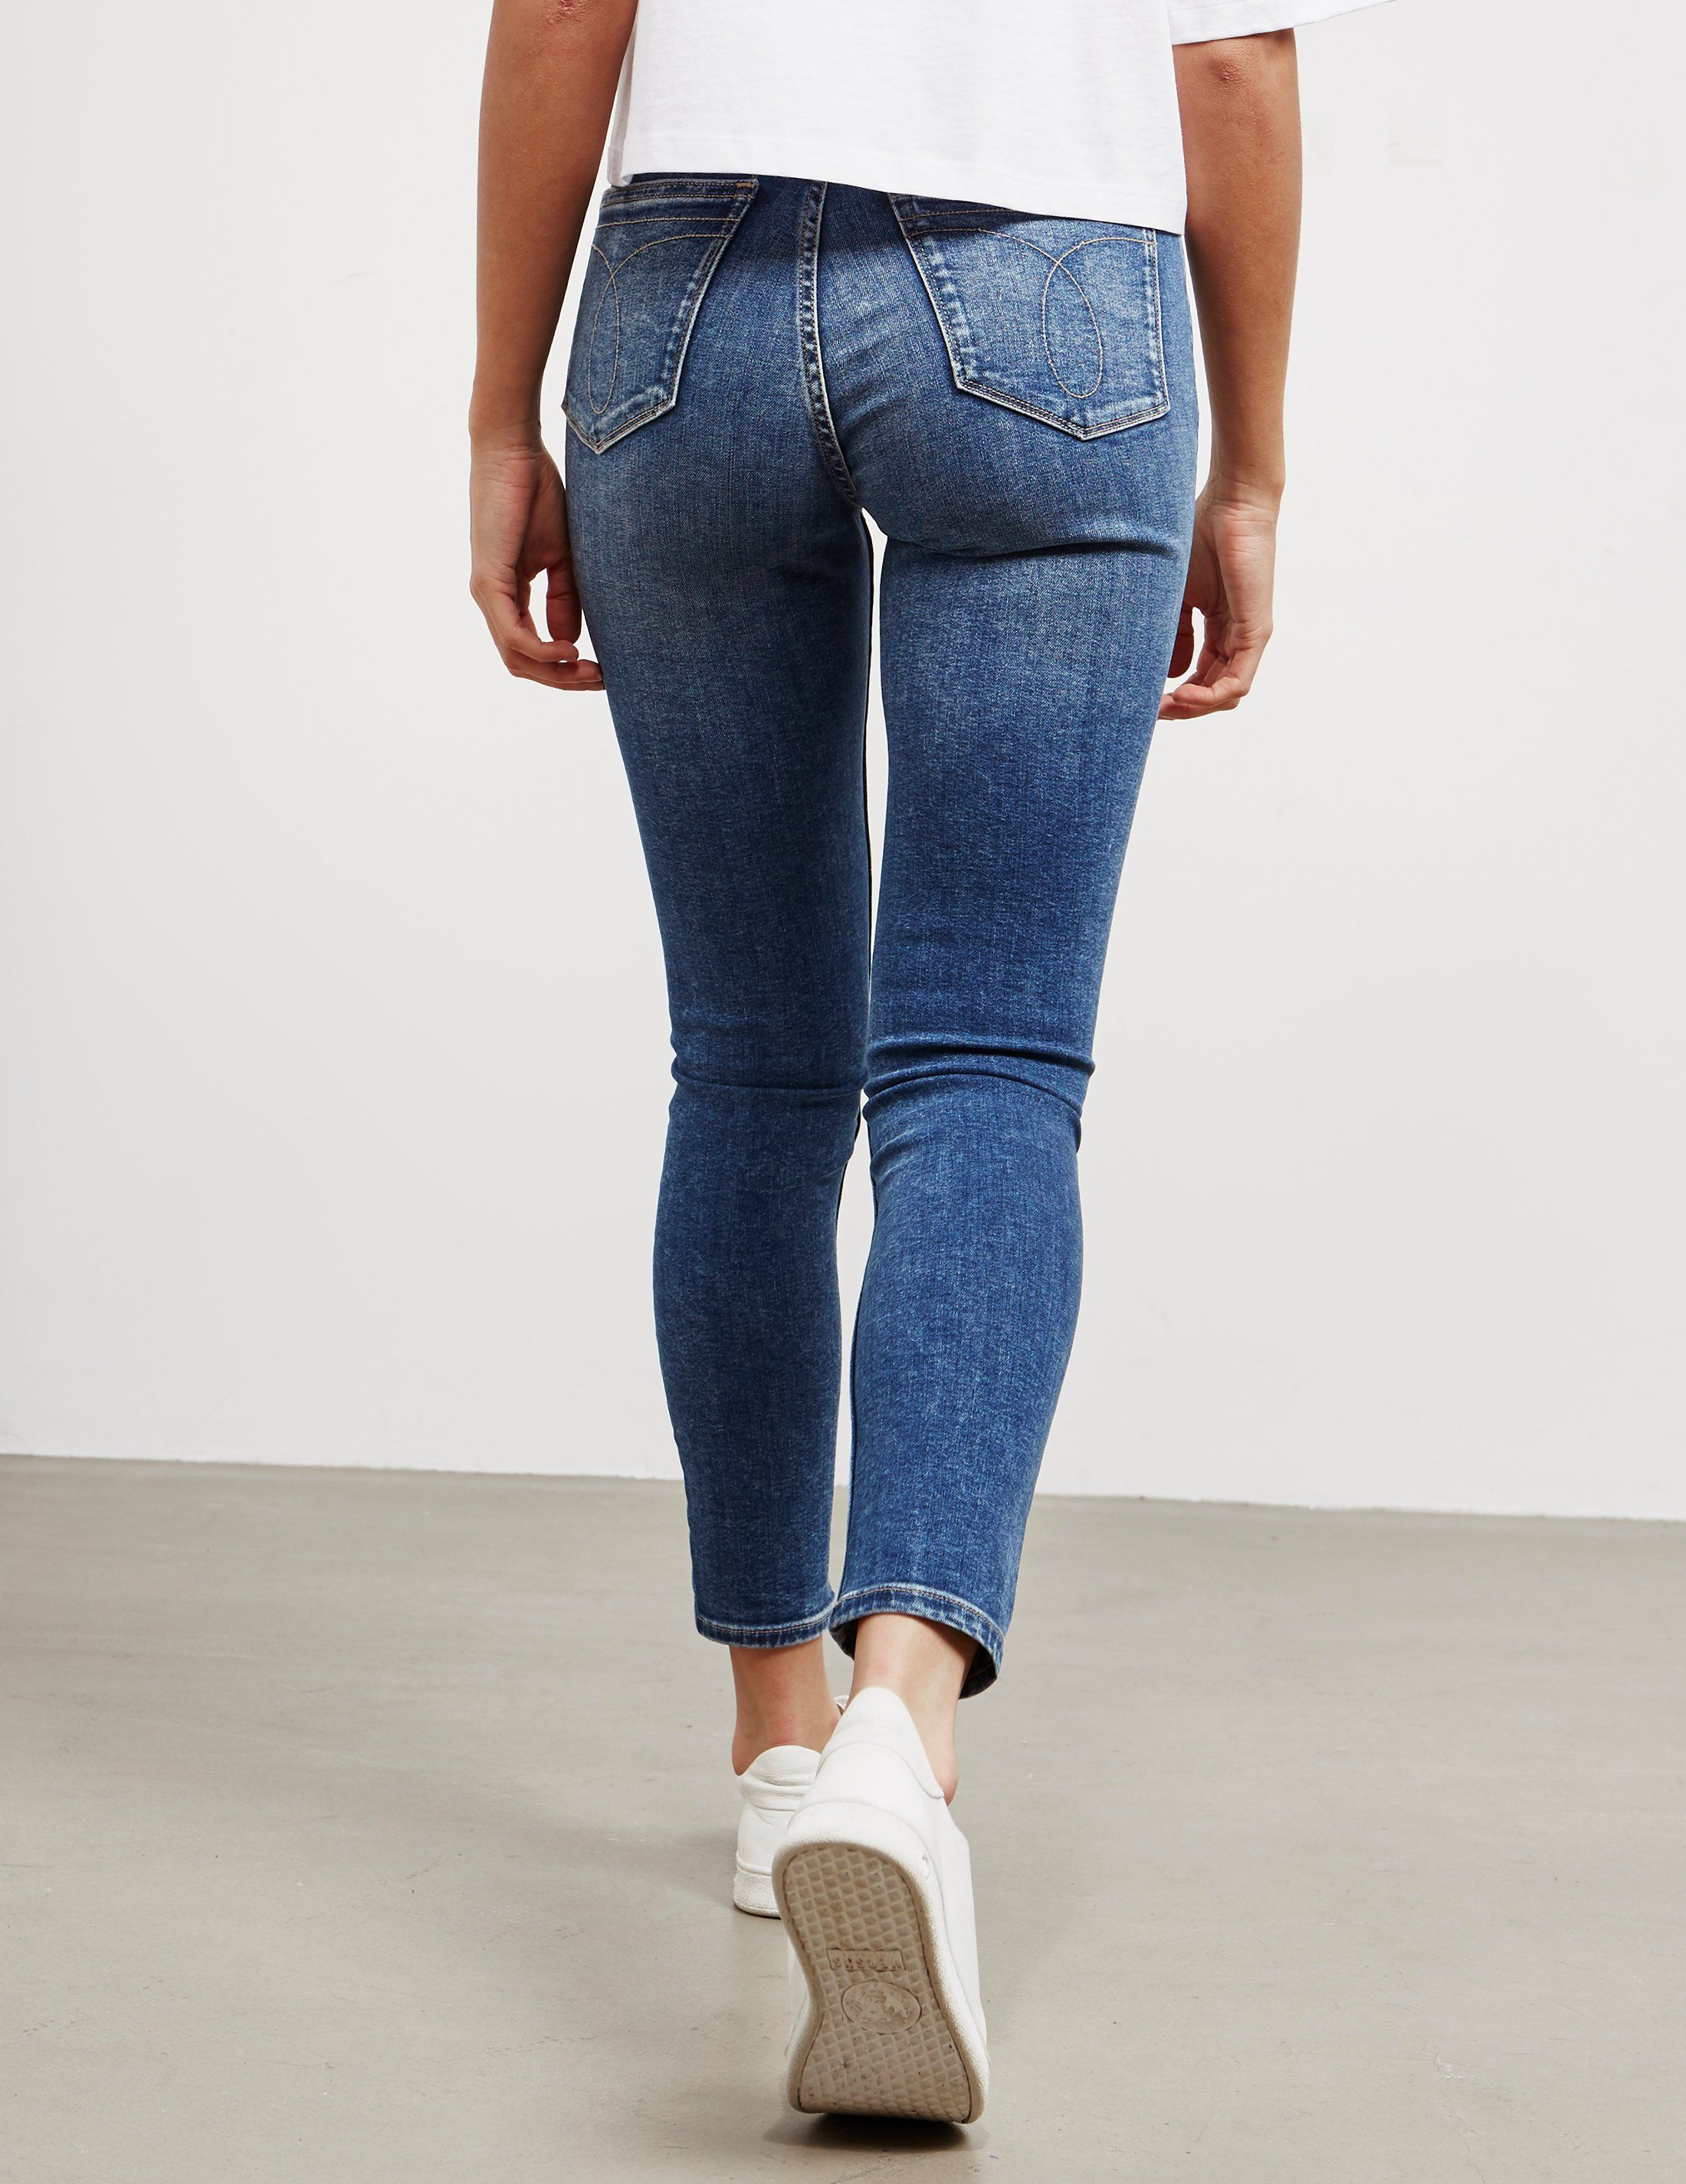 Calvin Klein Jeans Ankle Grazer Iconic Jeans